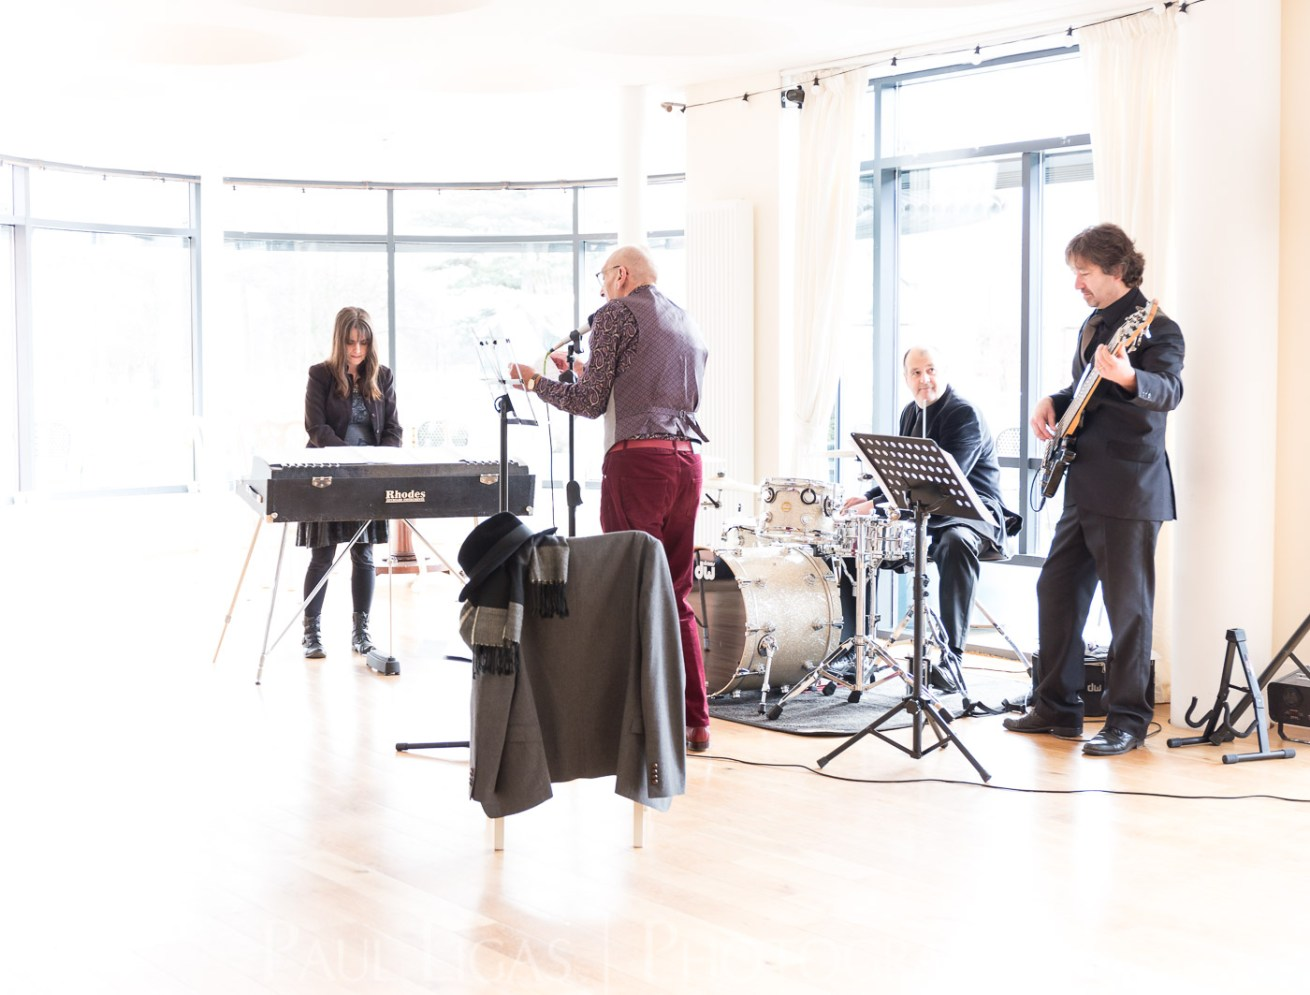 Eclectic, Jazz band concert photographer photography, Hereford, Herefordshire music 5320